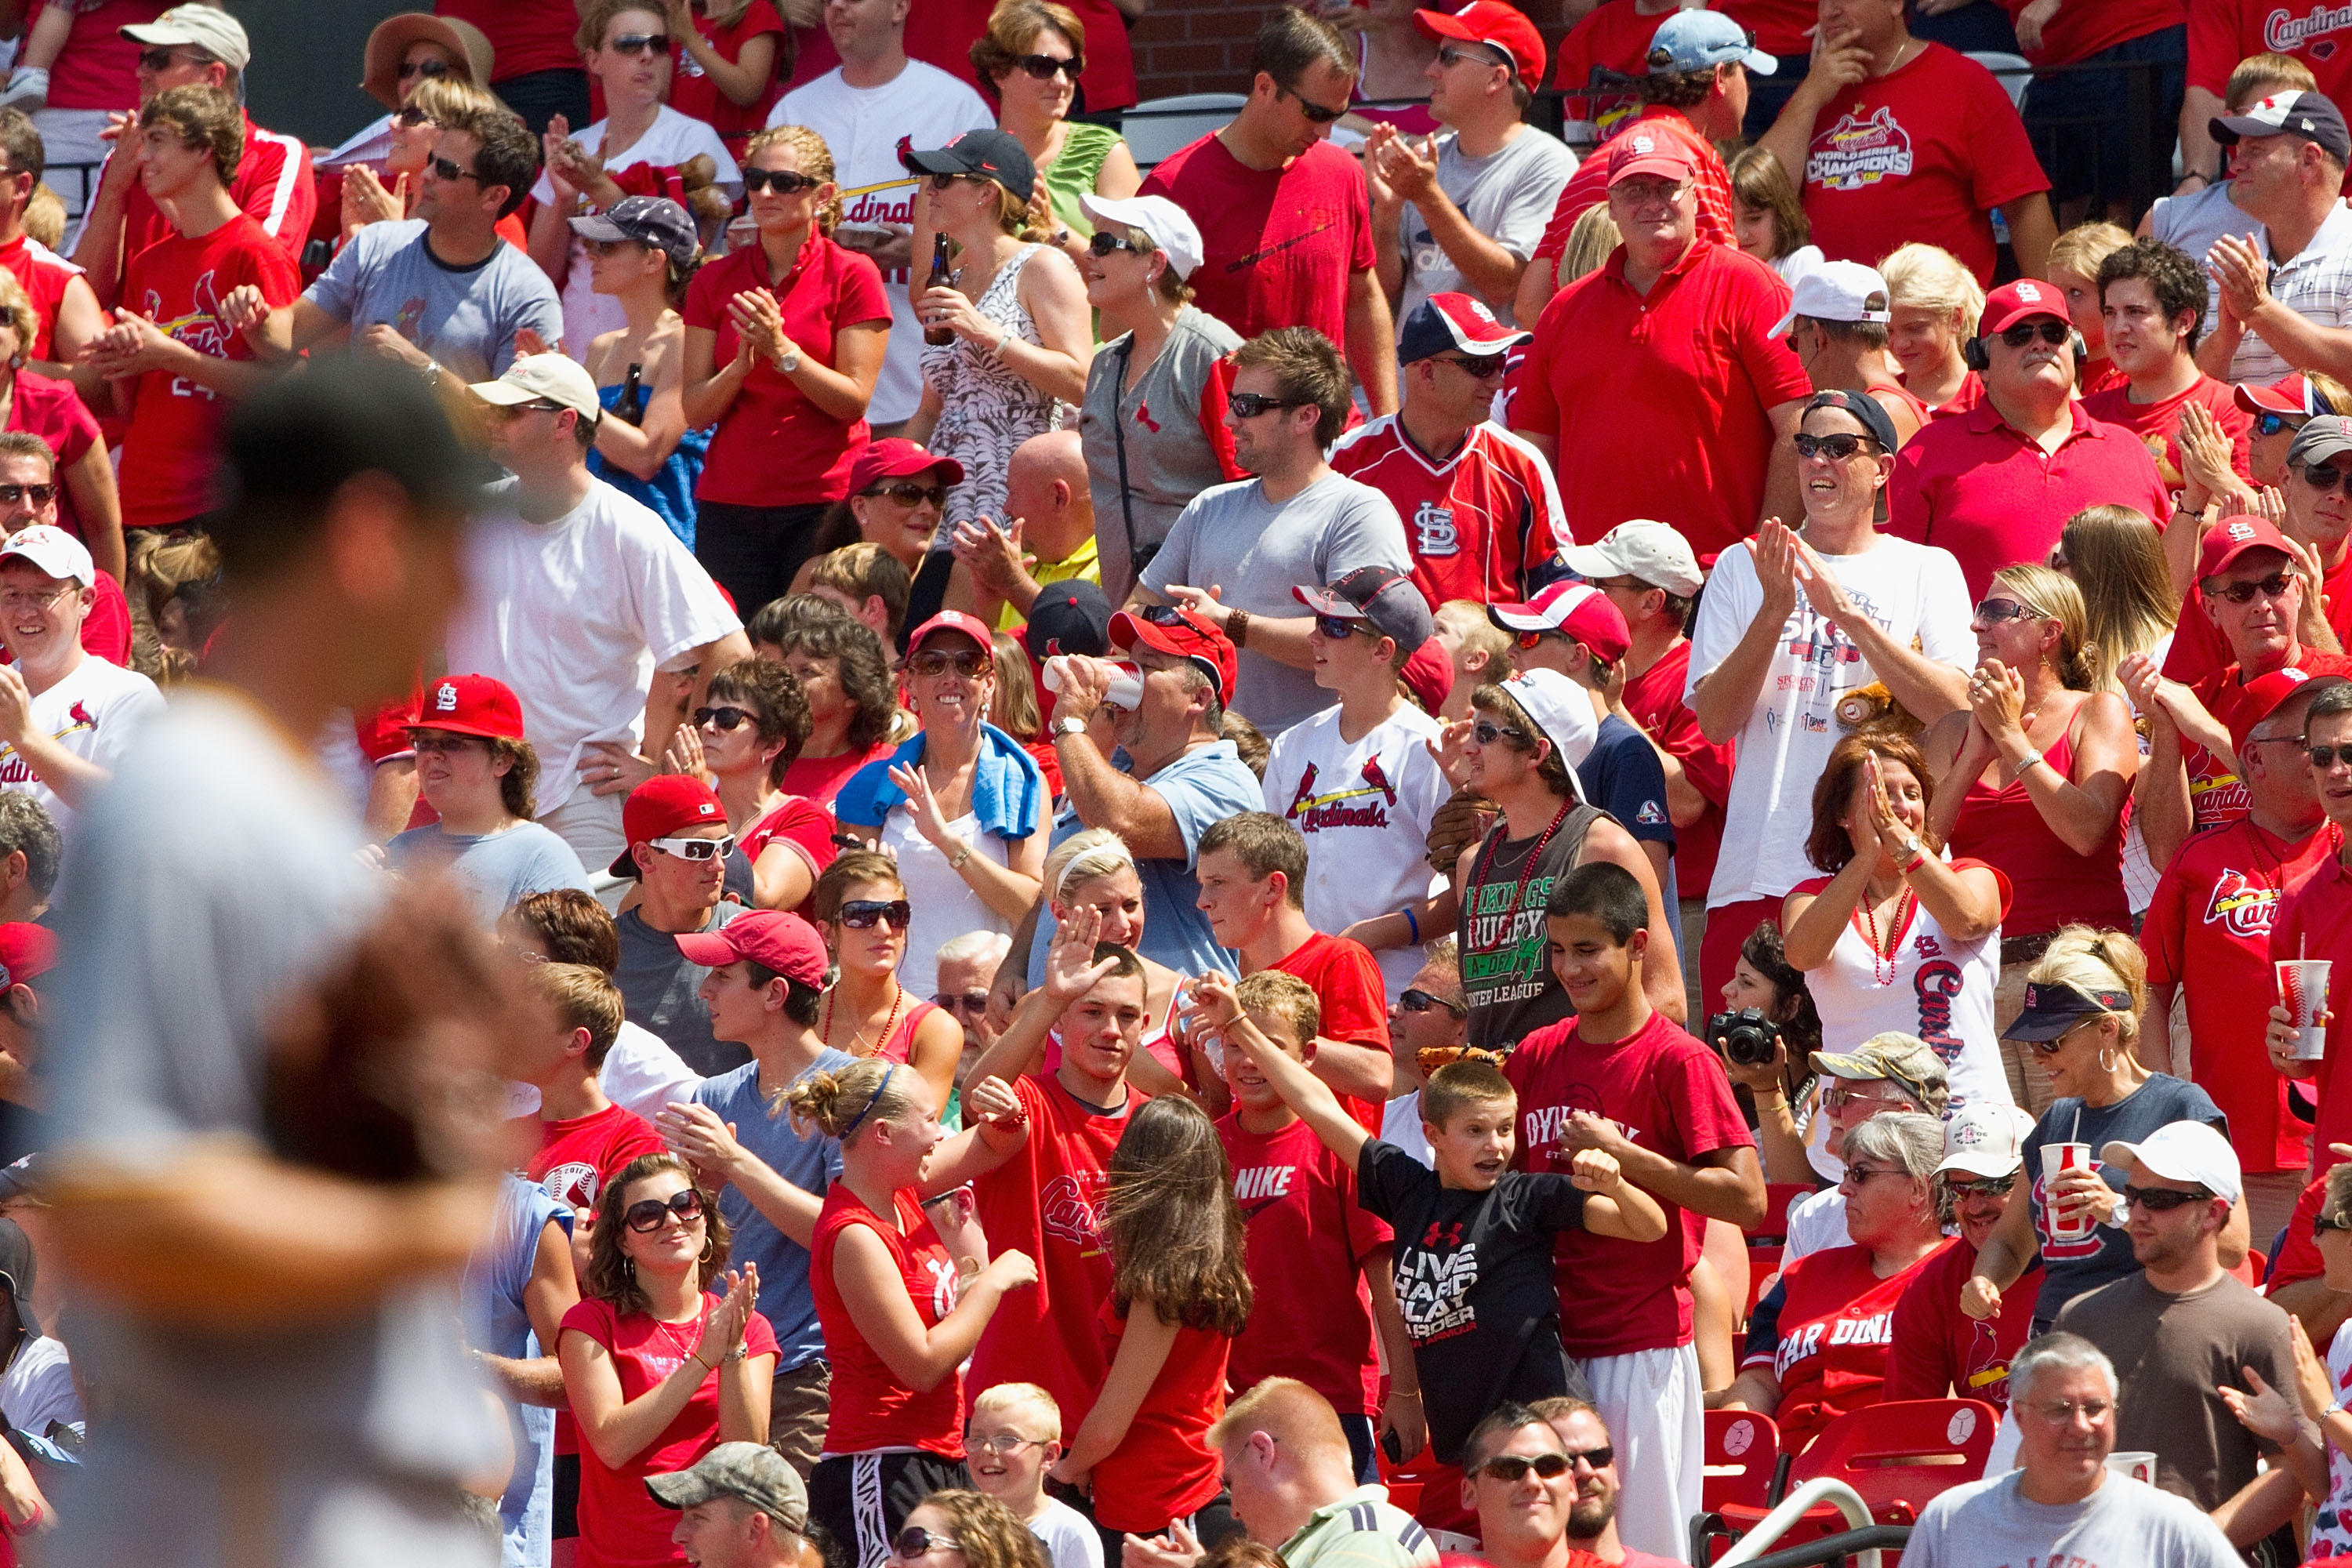 ST. LOUIS - AUGUST 1: St. Louis Cardinals fans react to a home run against the Pittsburgh Pirates at Busch Stadium on August 1, 2010 in St. Louis, Missouri.  The Cardinals beat the Pirates 9-1.  (Photo by Dilip Vishwanat/Getty Images)